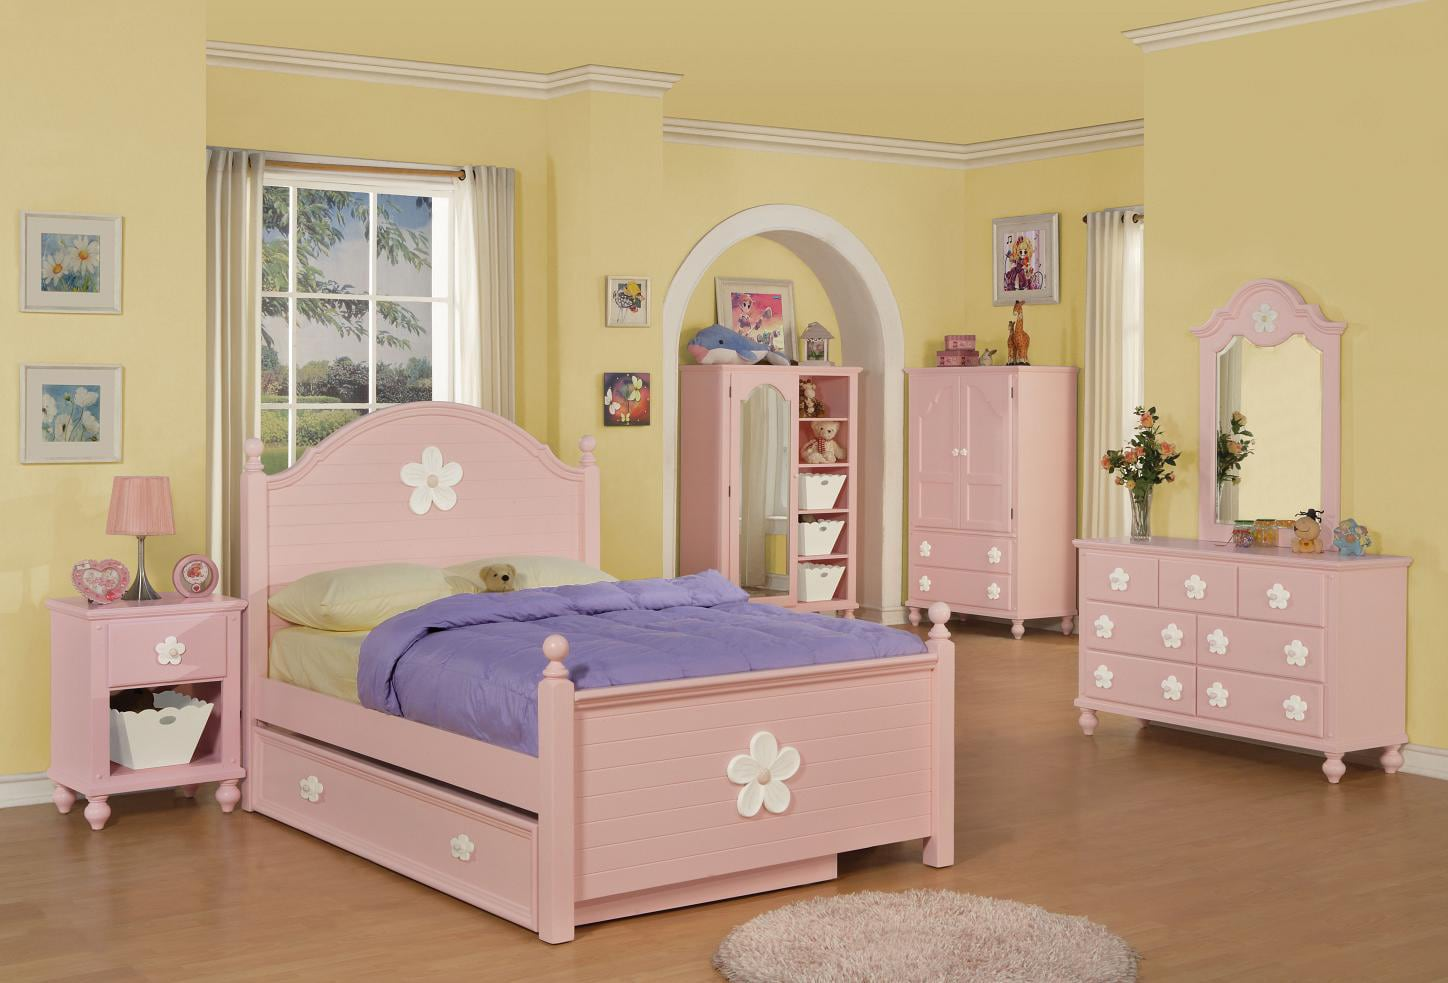 White and Pink Flower Twin-size Bed